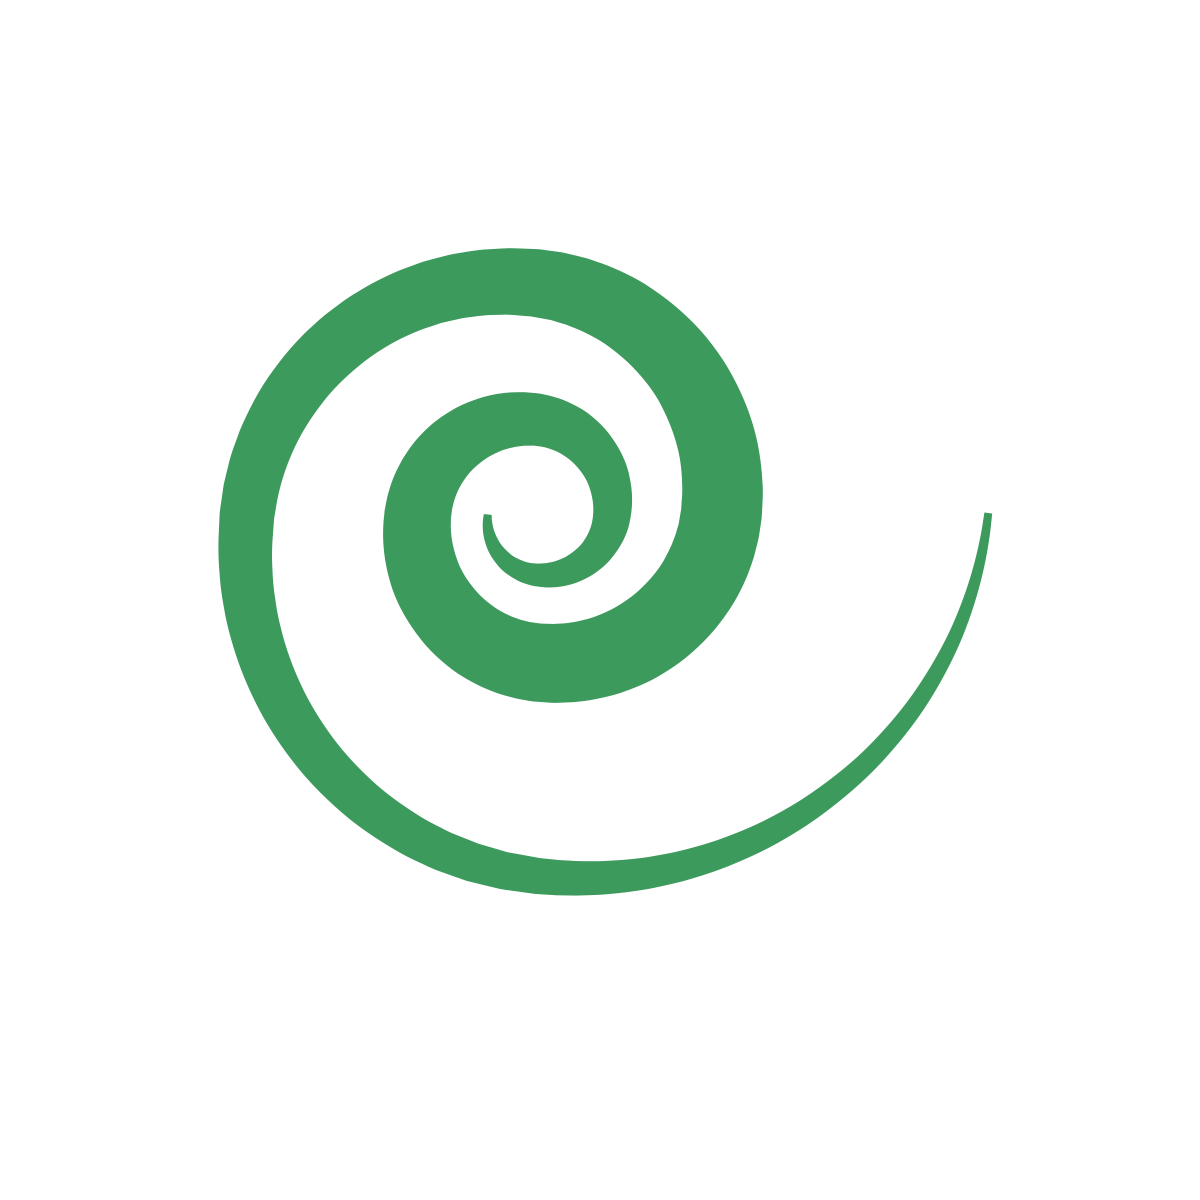 Center altar - The Center Altar is devoted to self-love, love in relationship to the other, community, and the universe. The symbol is the never-ending spiral, dressed in green and rainbow colors.